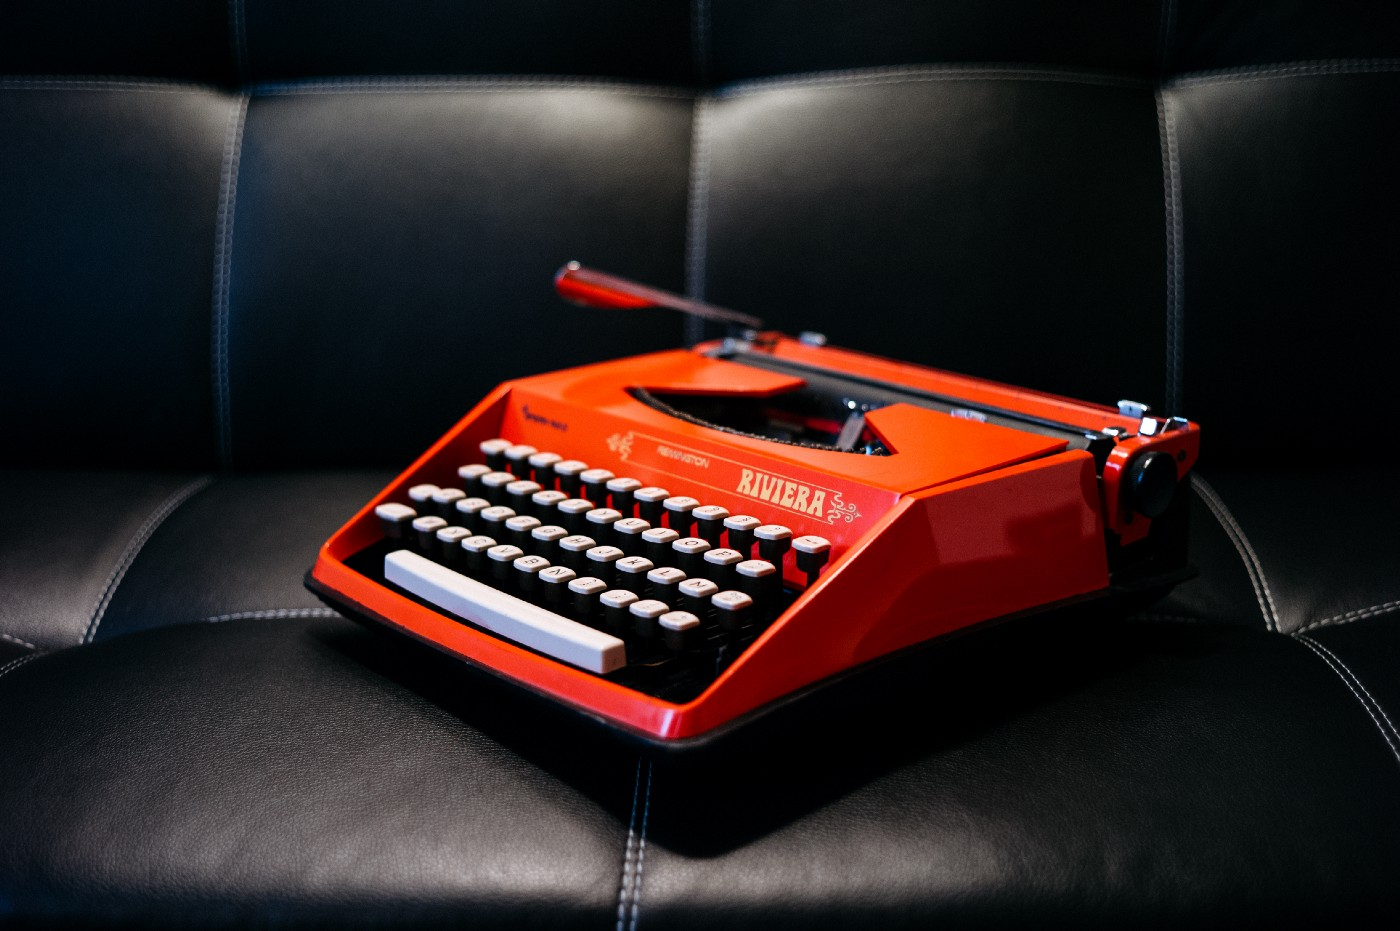 old red typewriter on a couch